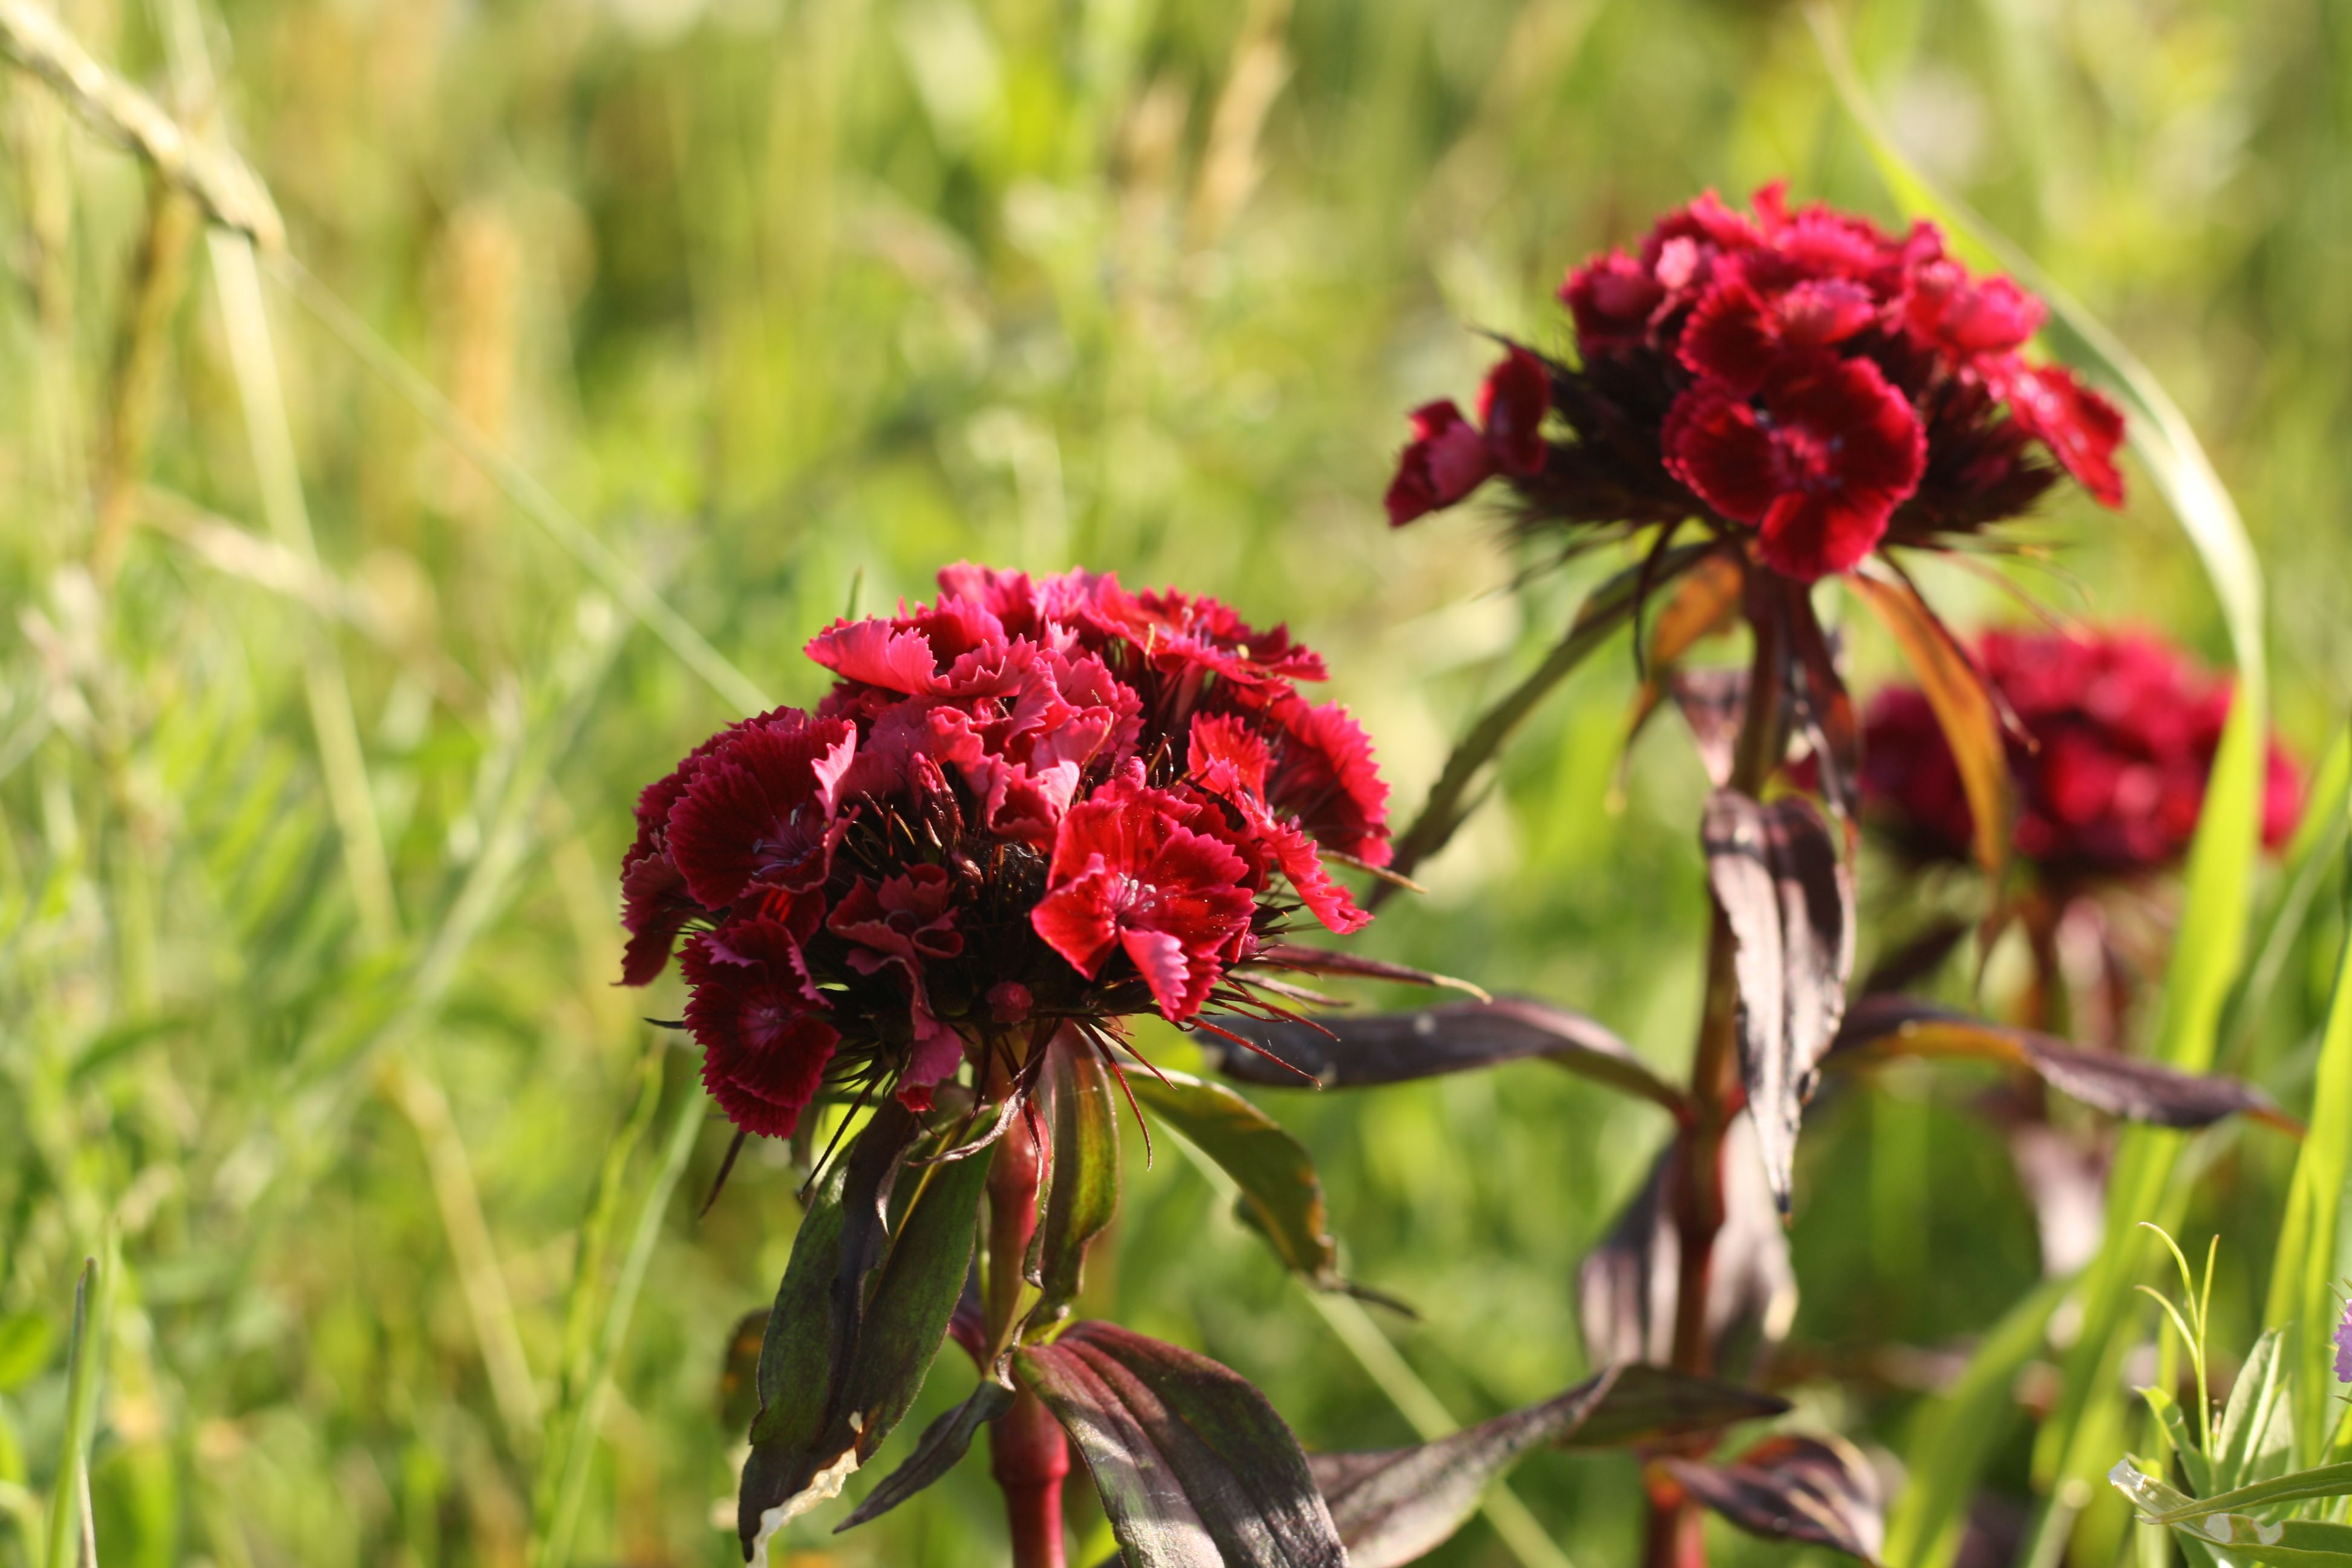 Deep red sweet William flowers are growing in a field.